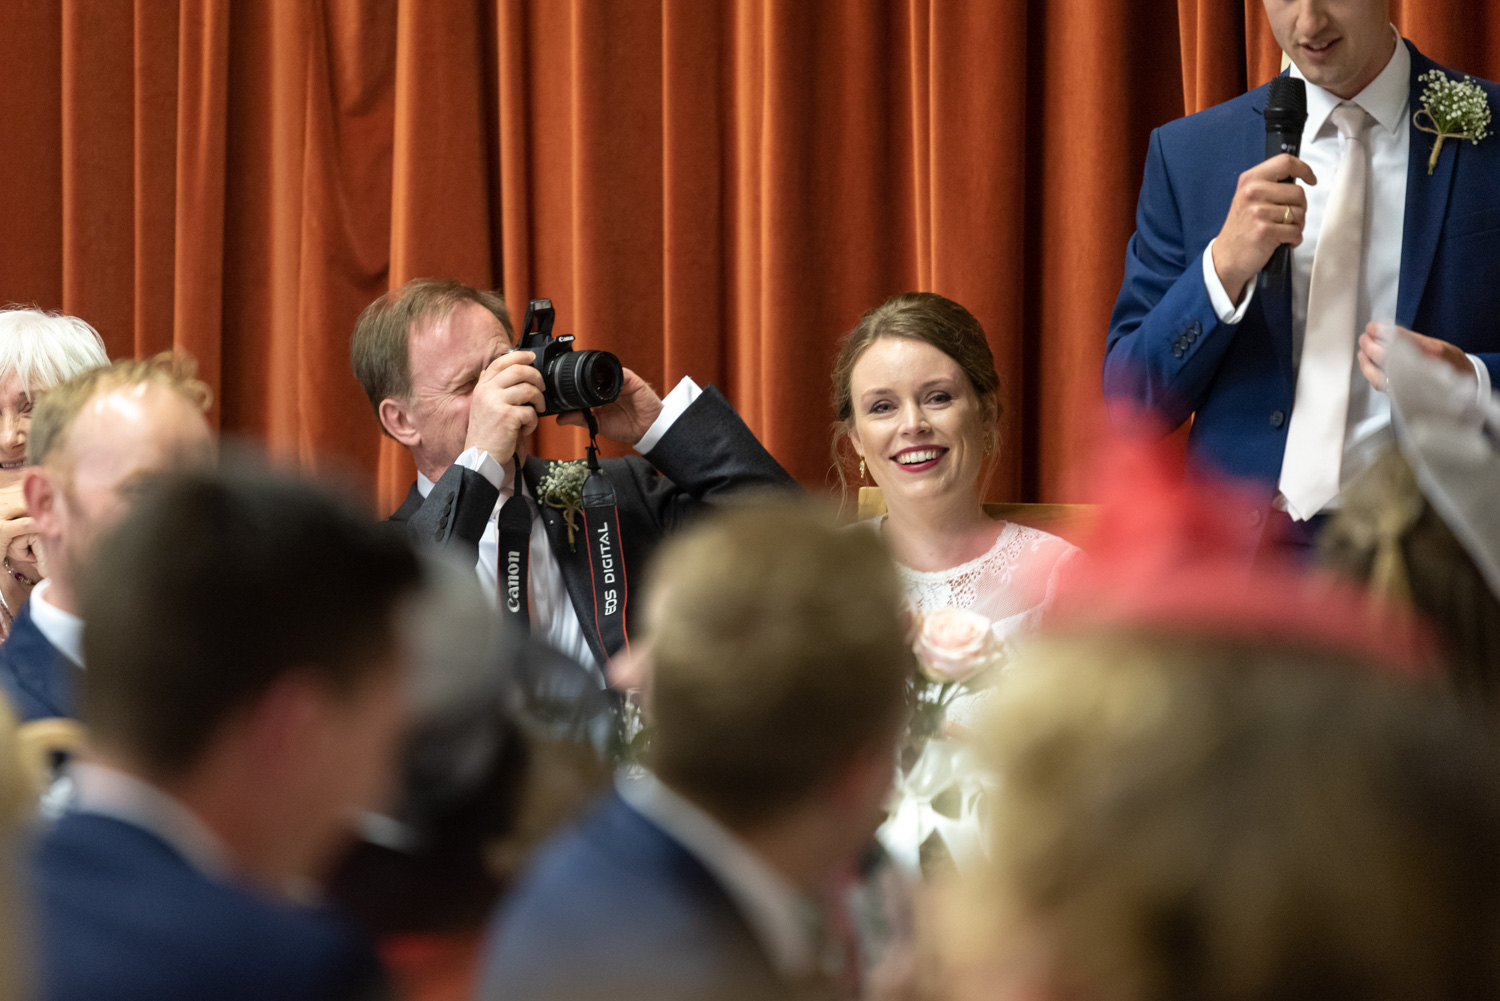 Brides father taking photo during grooms speech